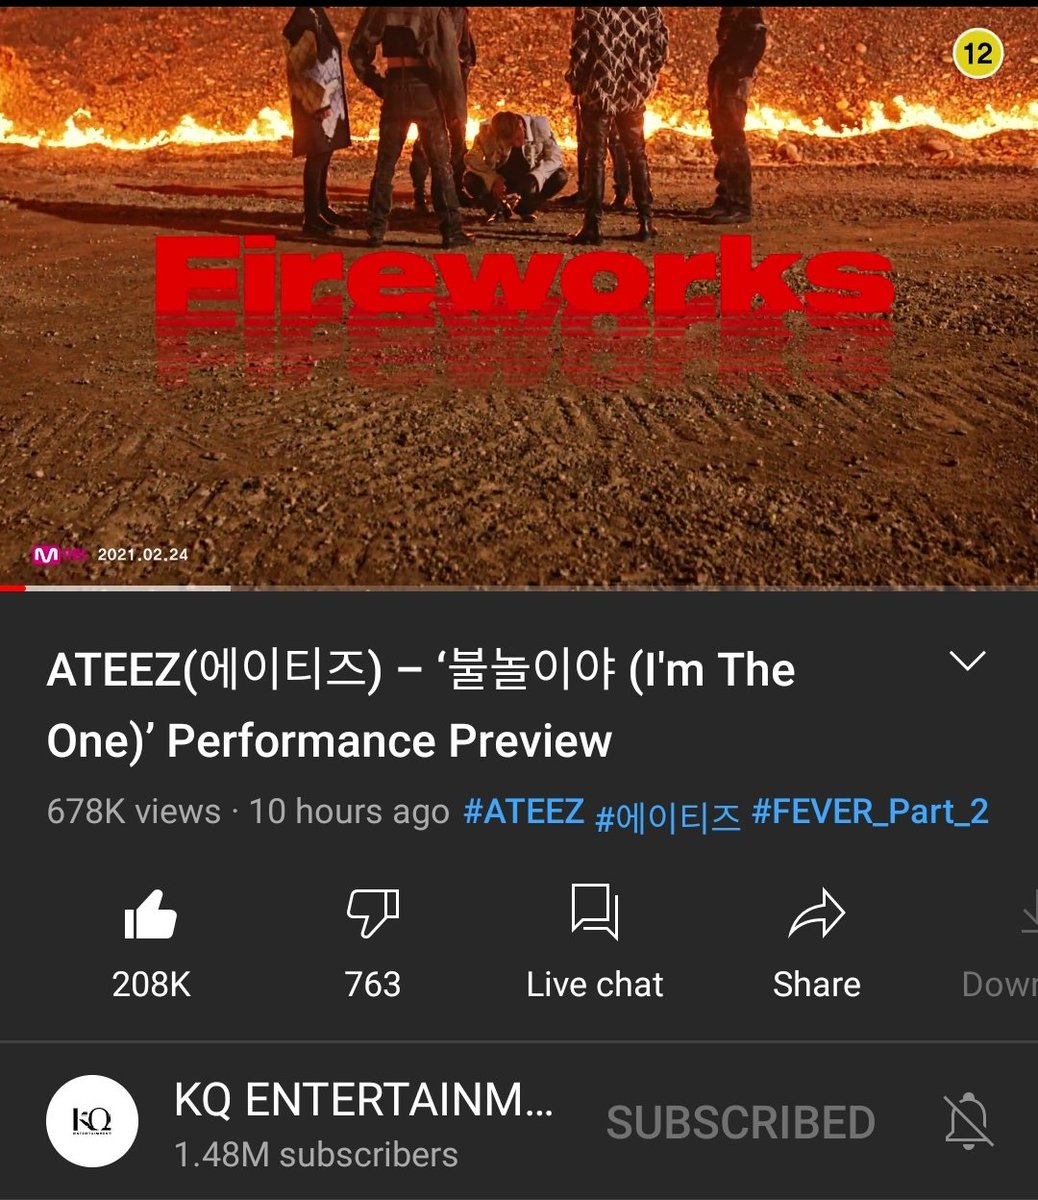 The difference in numbers😘😘😘 @ATEEZofficial #ATEEZ #ATEEZPREVIEW #KINGTEEZ #ATEEZIsComing @kqent #ATEEZTOTHETOP